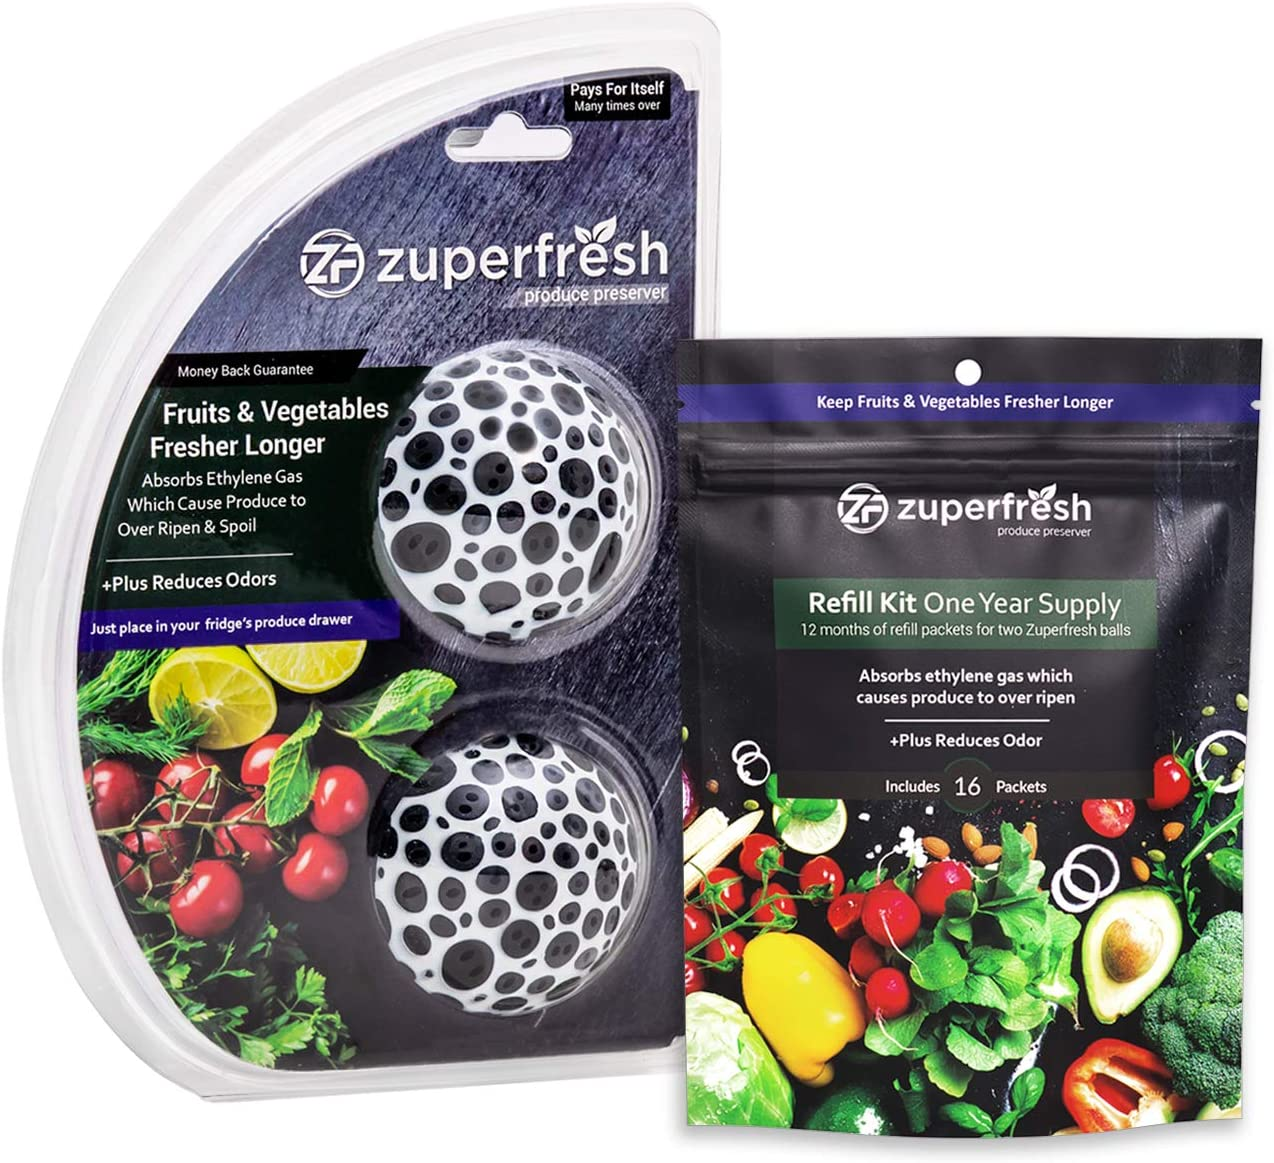 Zuperfresh Produce Saver Combo Pack 1 Year Supply, Extend the Life of Your Fruits & Vegetables, Absorbs Ethylene Gas Which Cause Produce to Over Ripen & Spoil